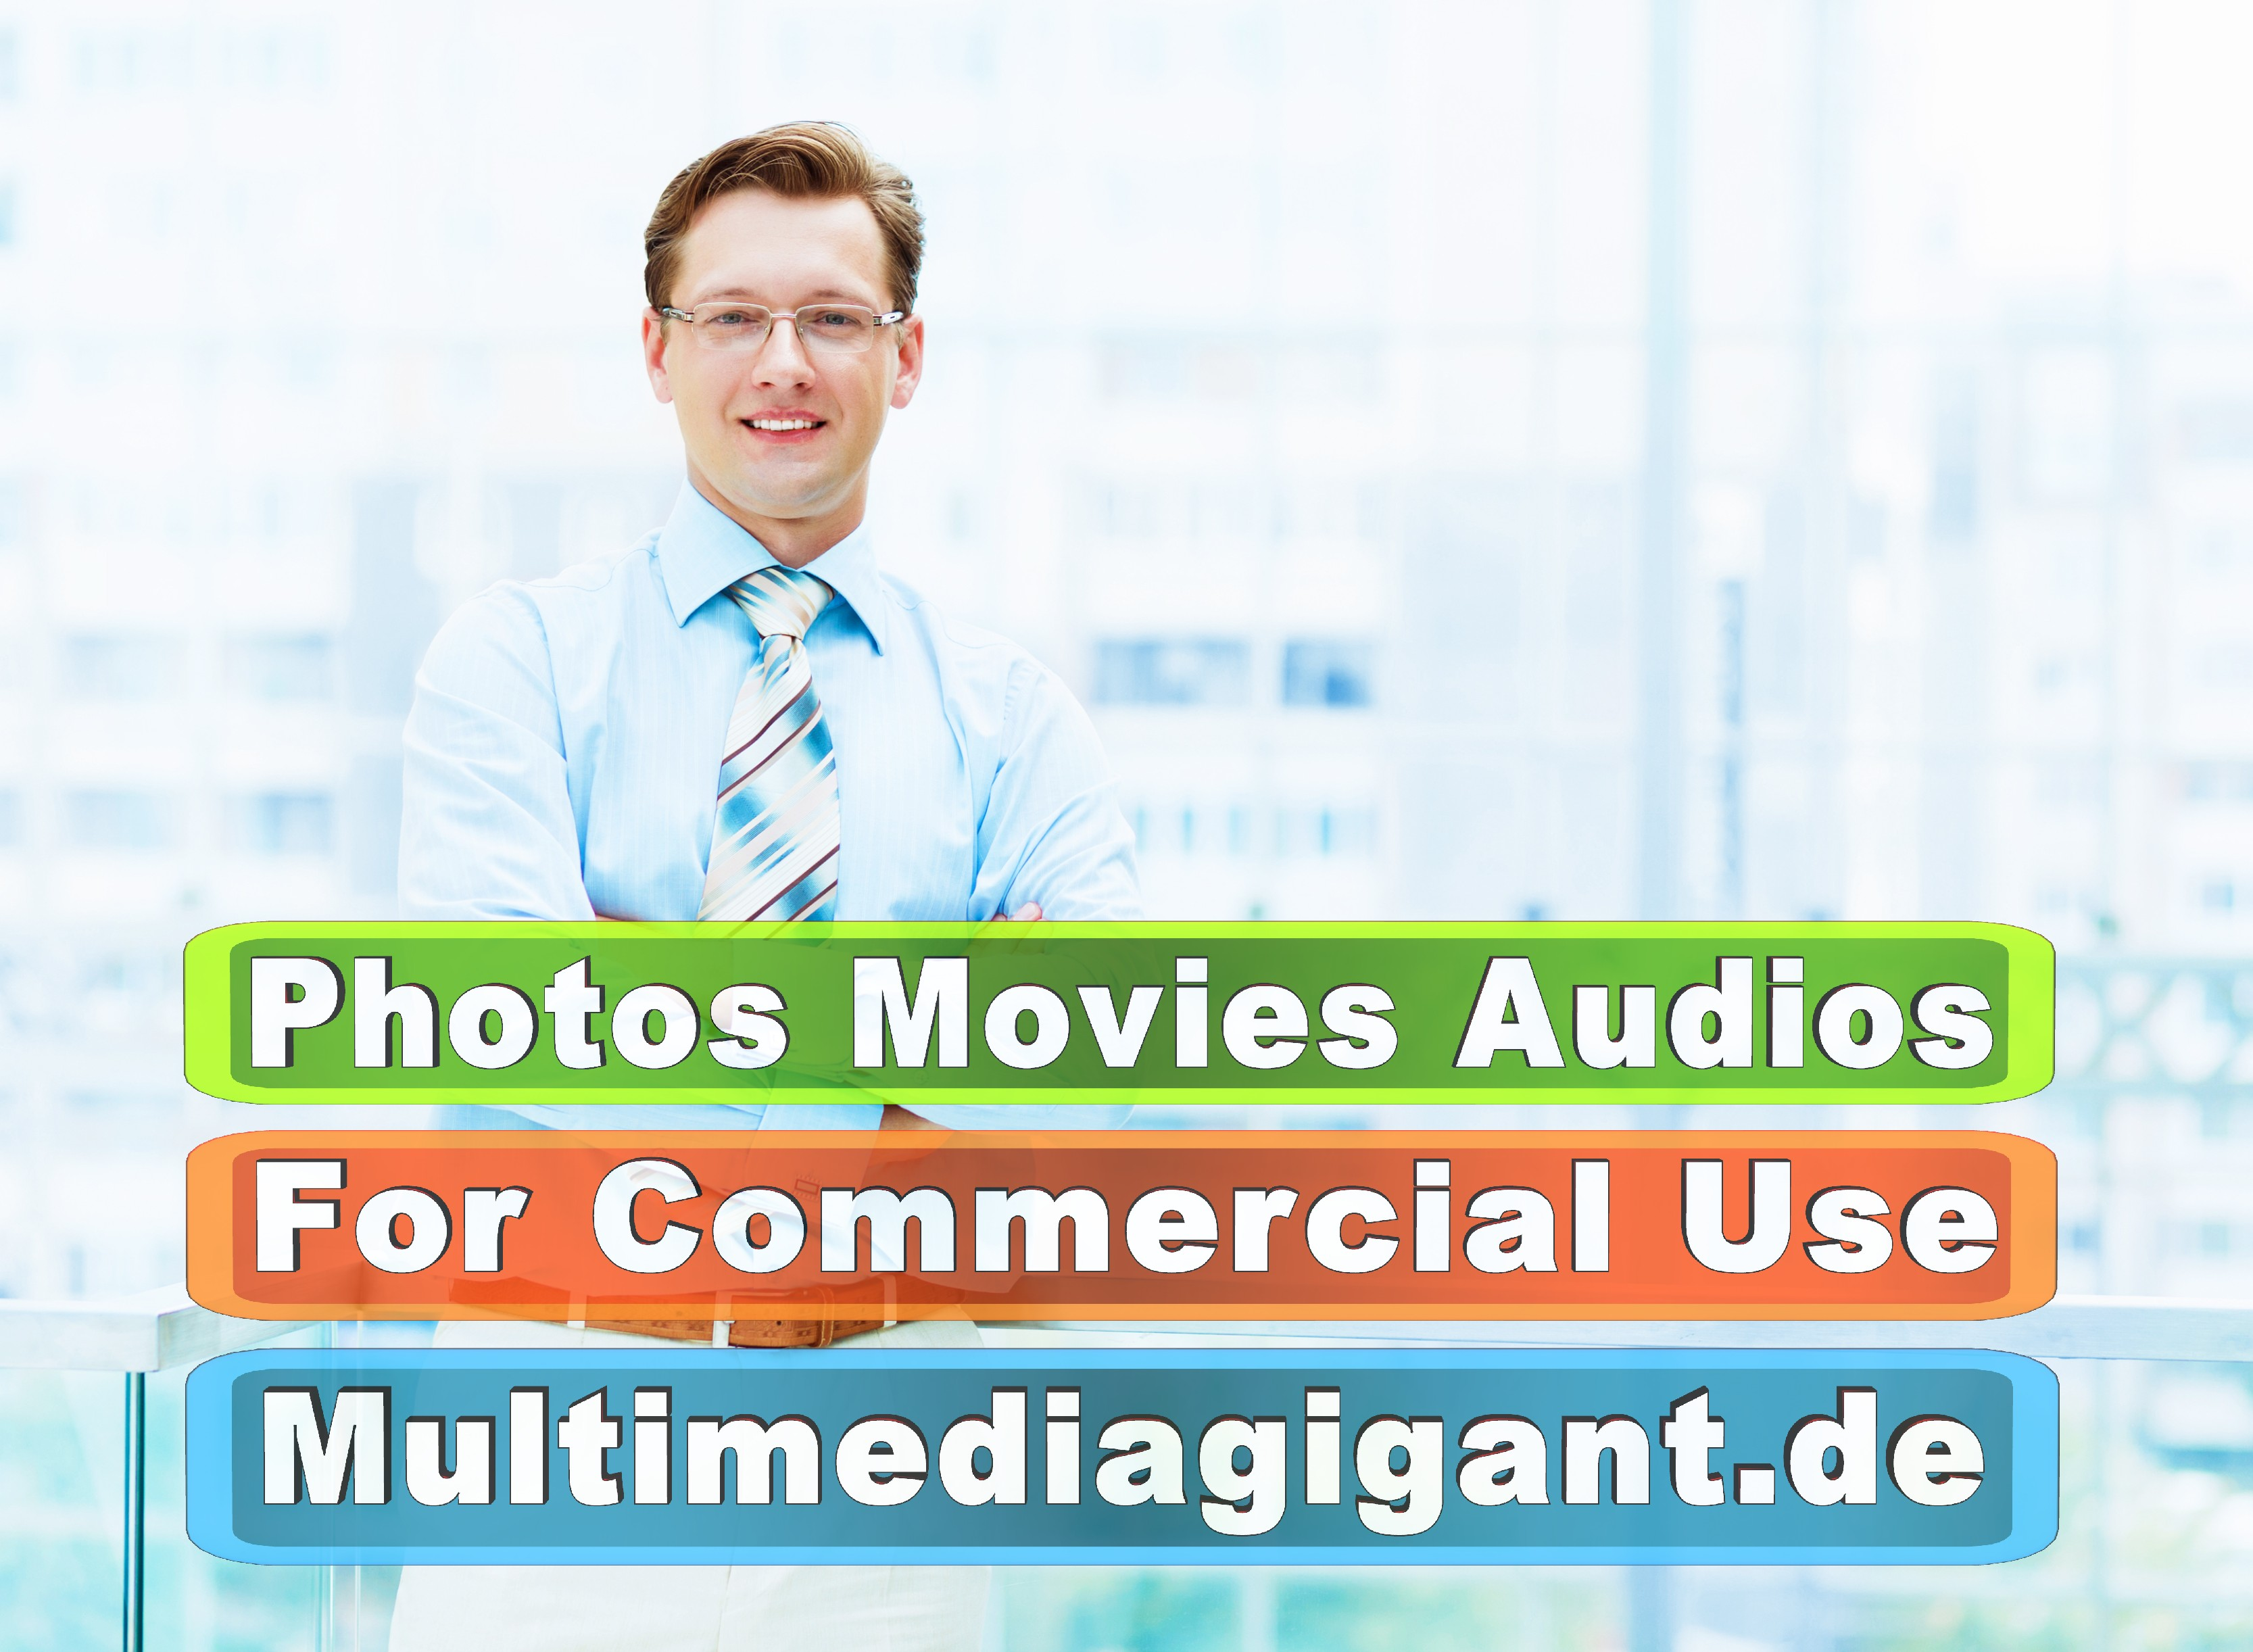 Cheap Royalty Free Images For Commercial Use